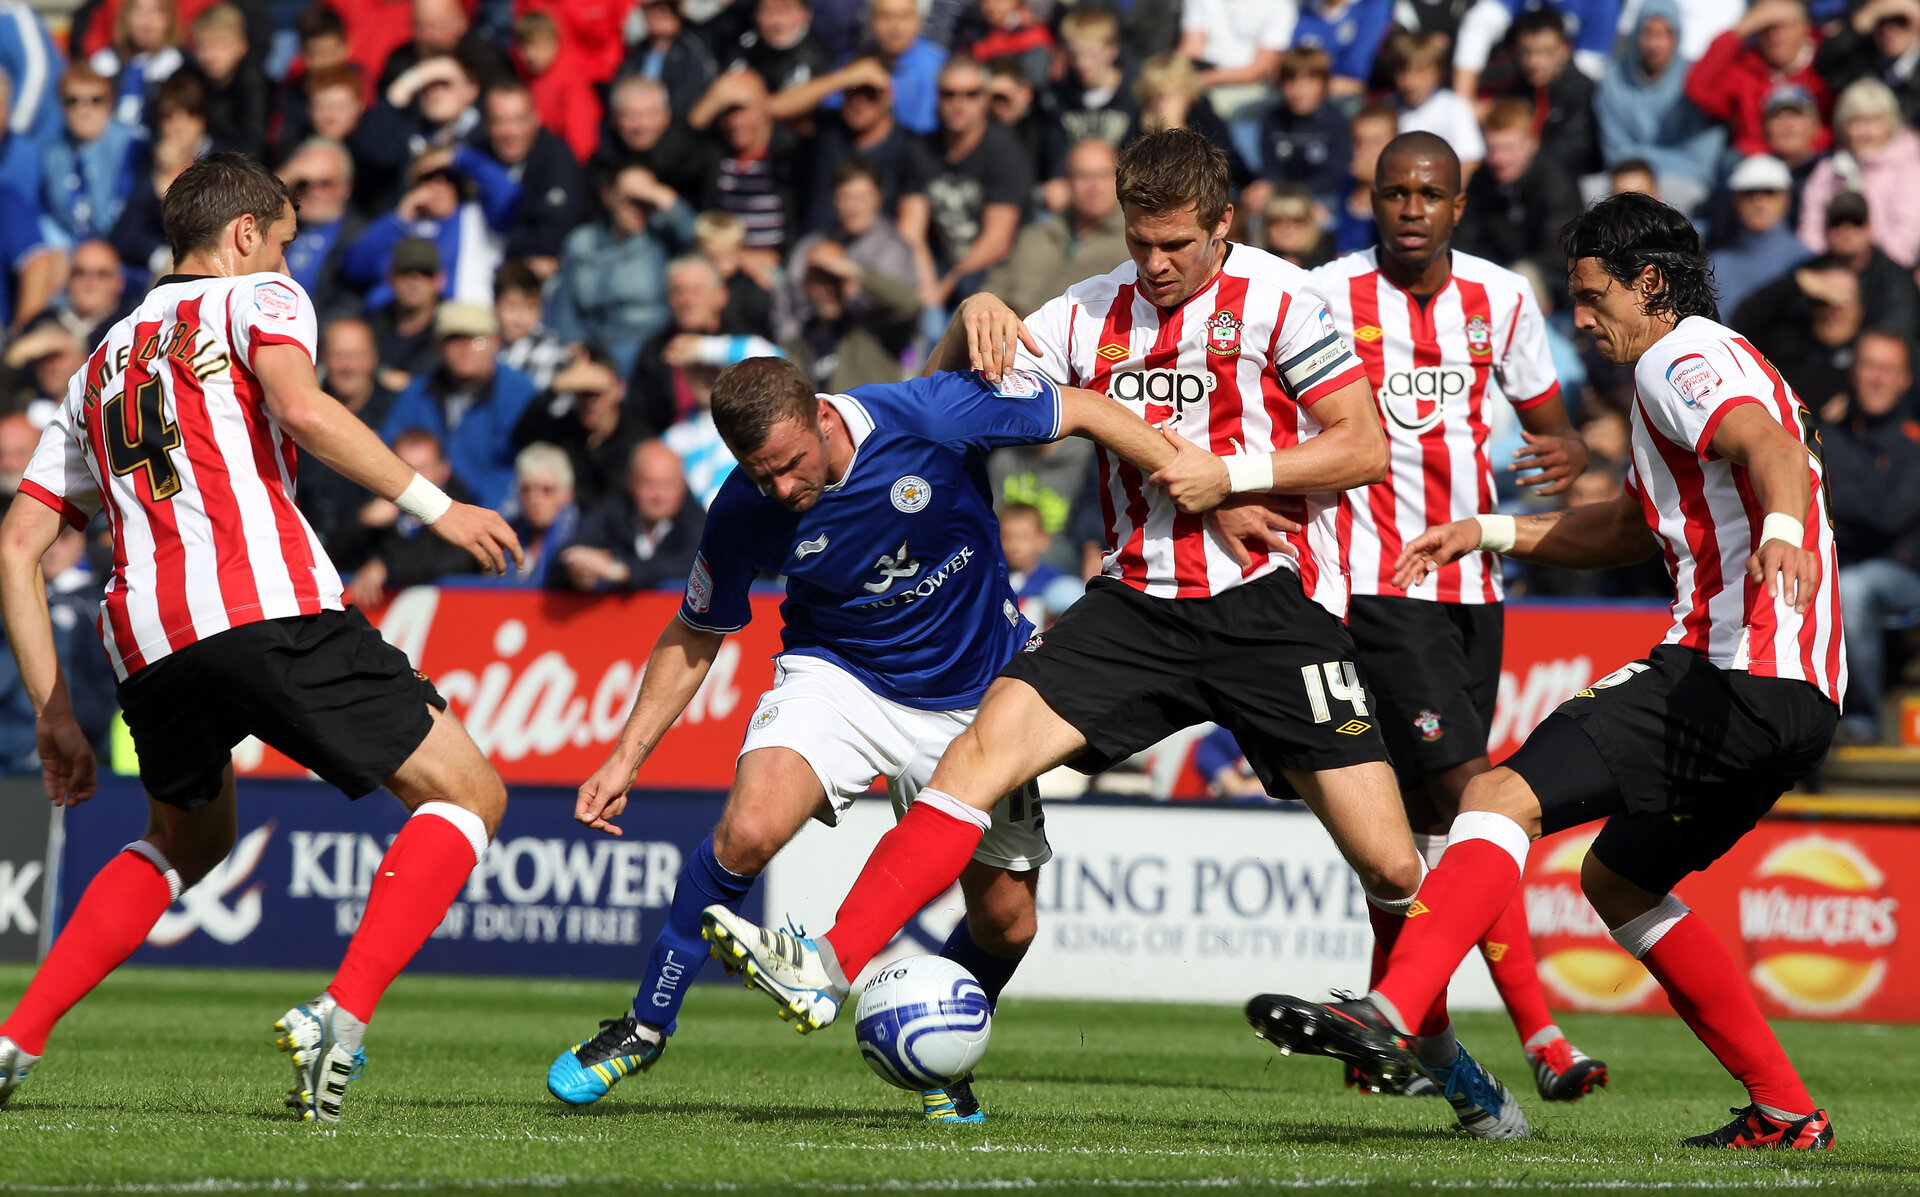 LEICESTER, ENGLAND - AUGUST 27:  Richie Wellens of Leicester is challenged by Dean Hammondl of Southampton during the npower Championship match between Leicester City v Southampton at The King Power Stadium on August 27, 2011 in Leicester, England.  (Photo by Ross Kinnaird/Getty Images)